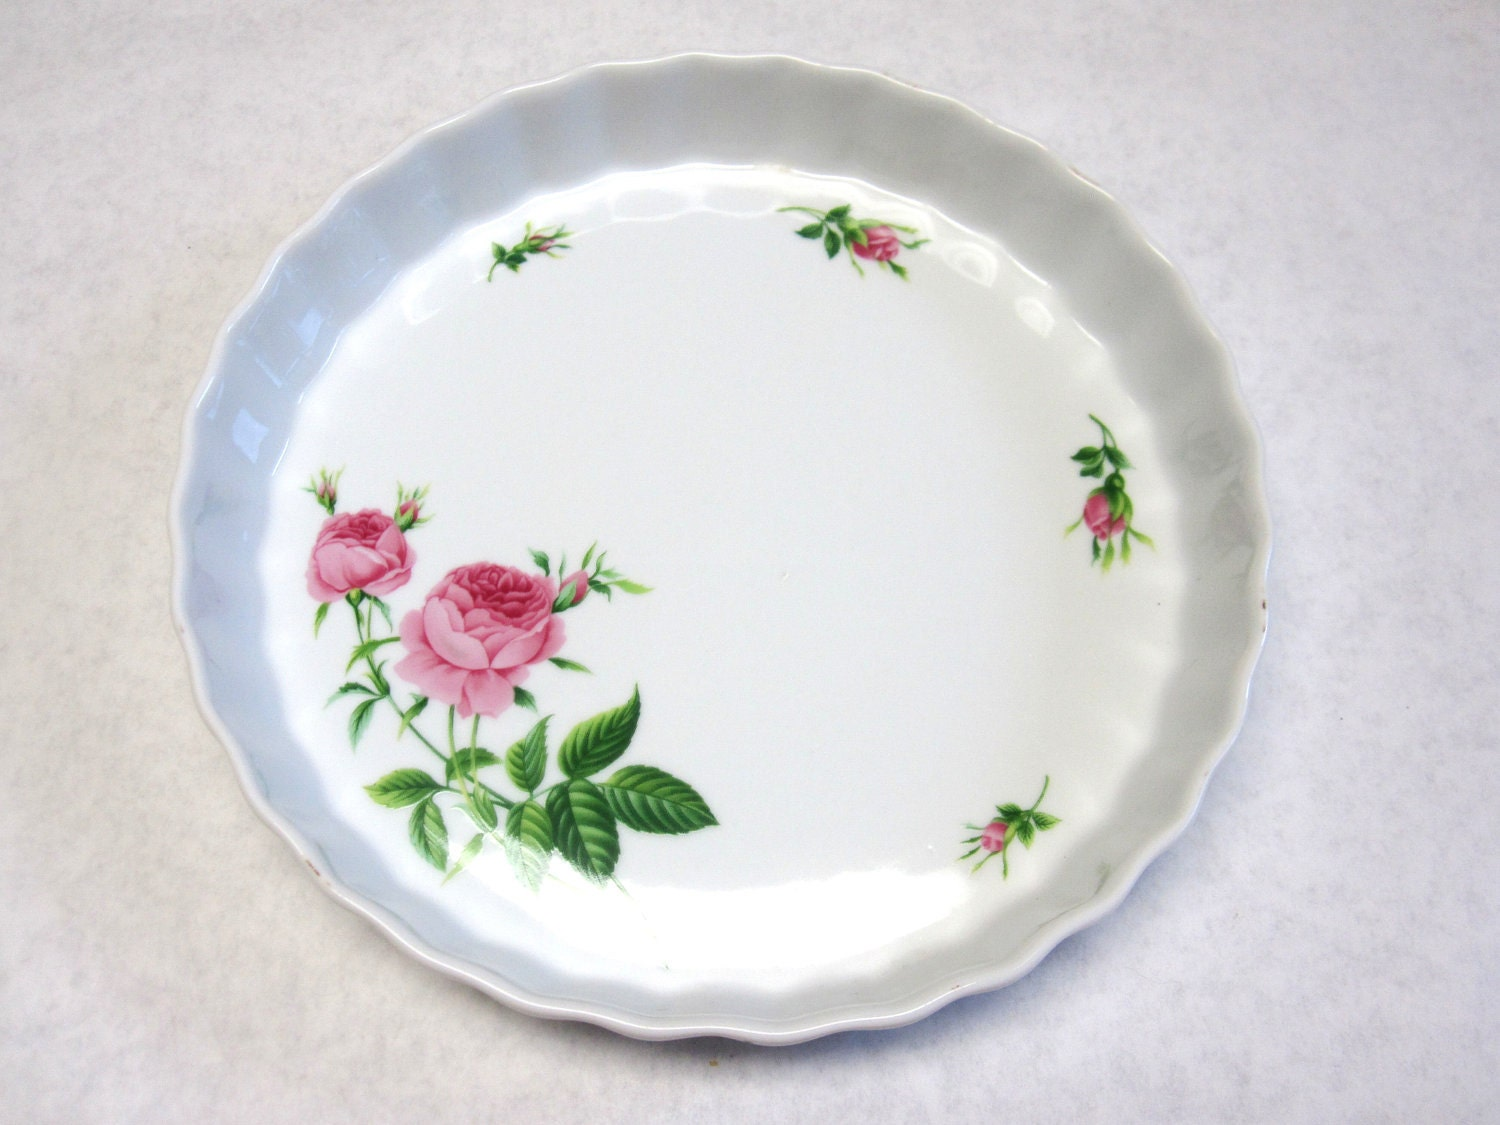 Pie Pan Decorative Plate Quiche Christineholm By